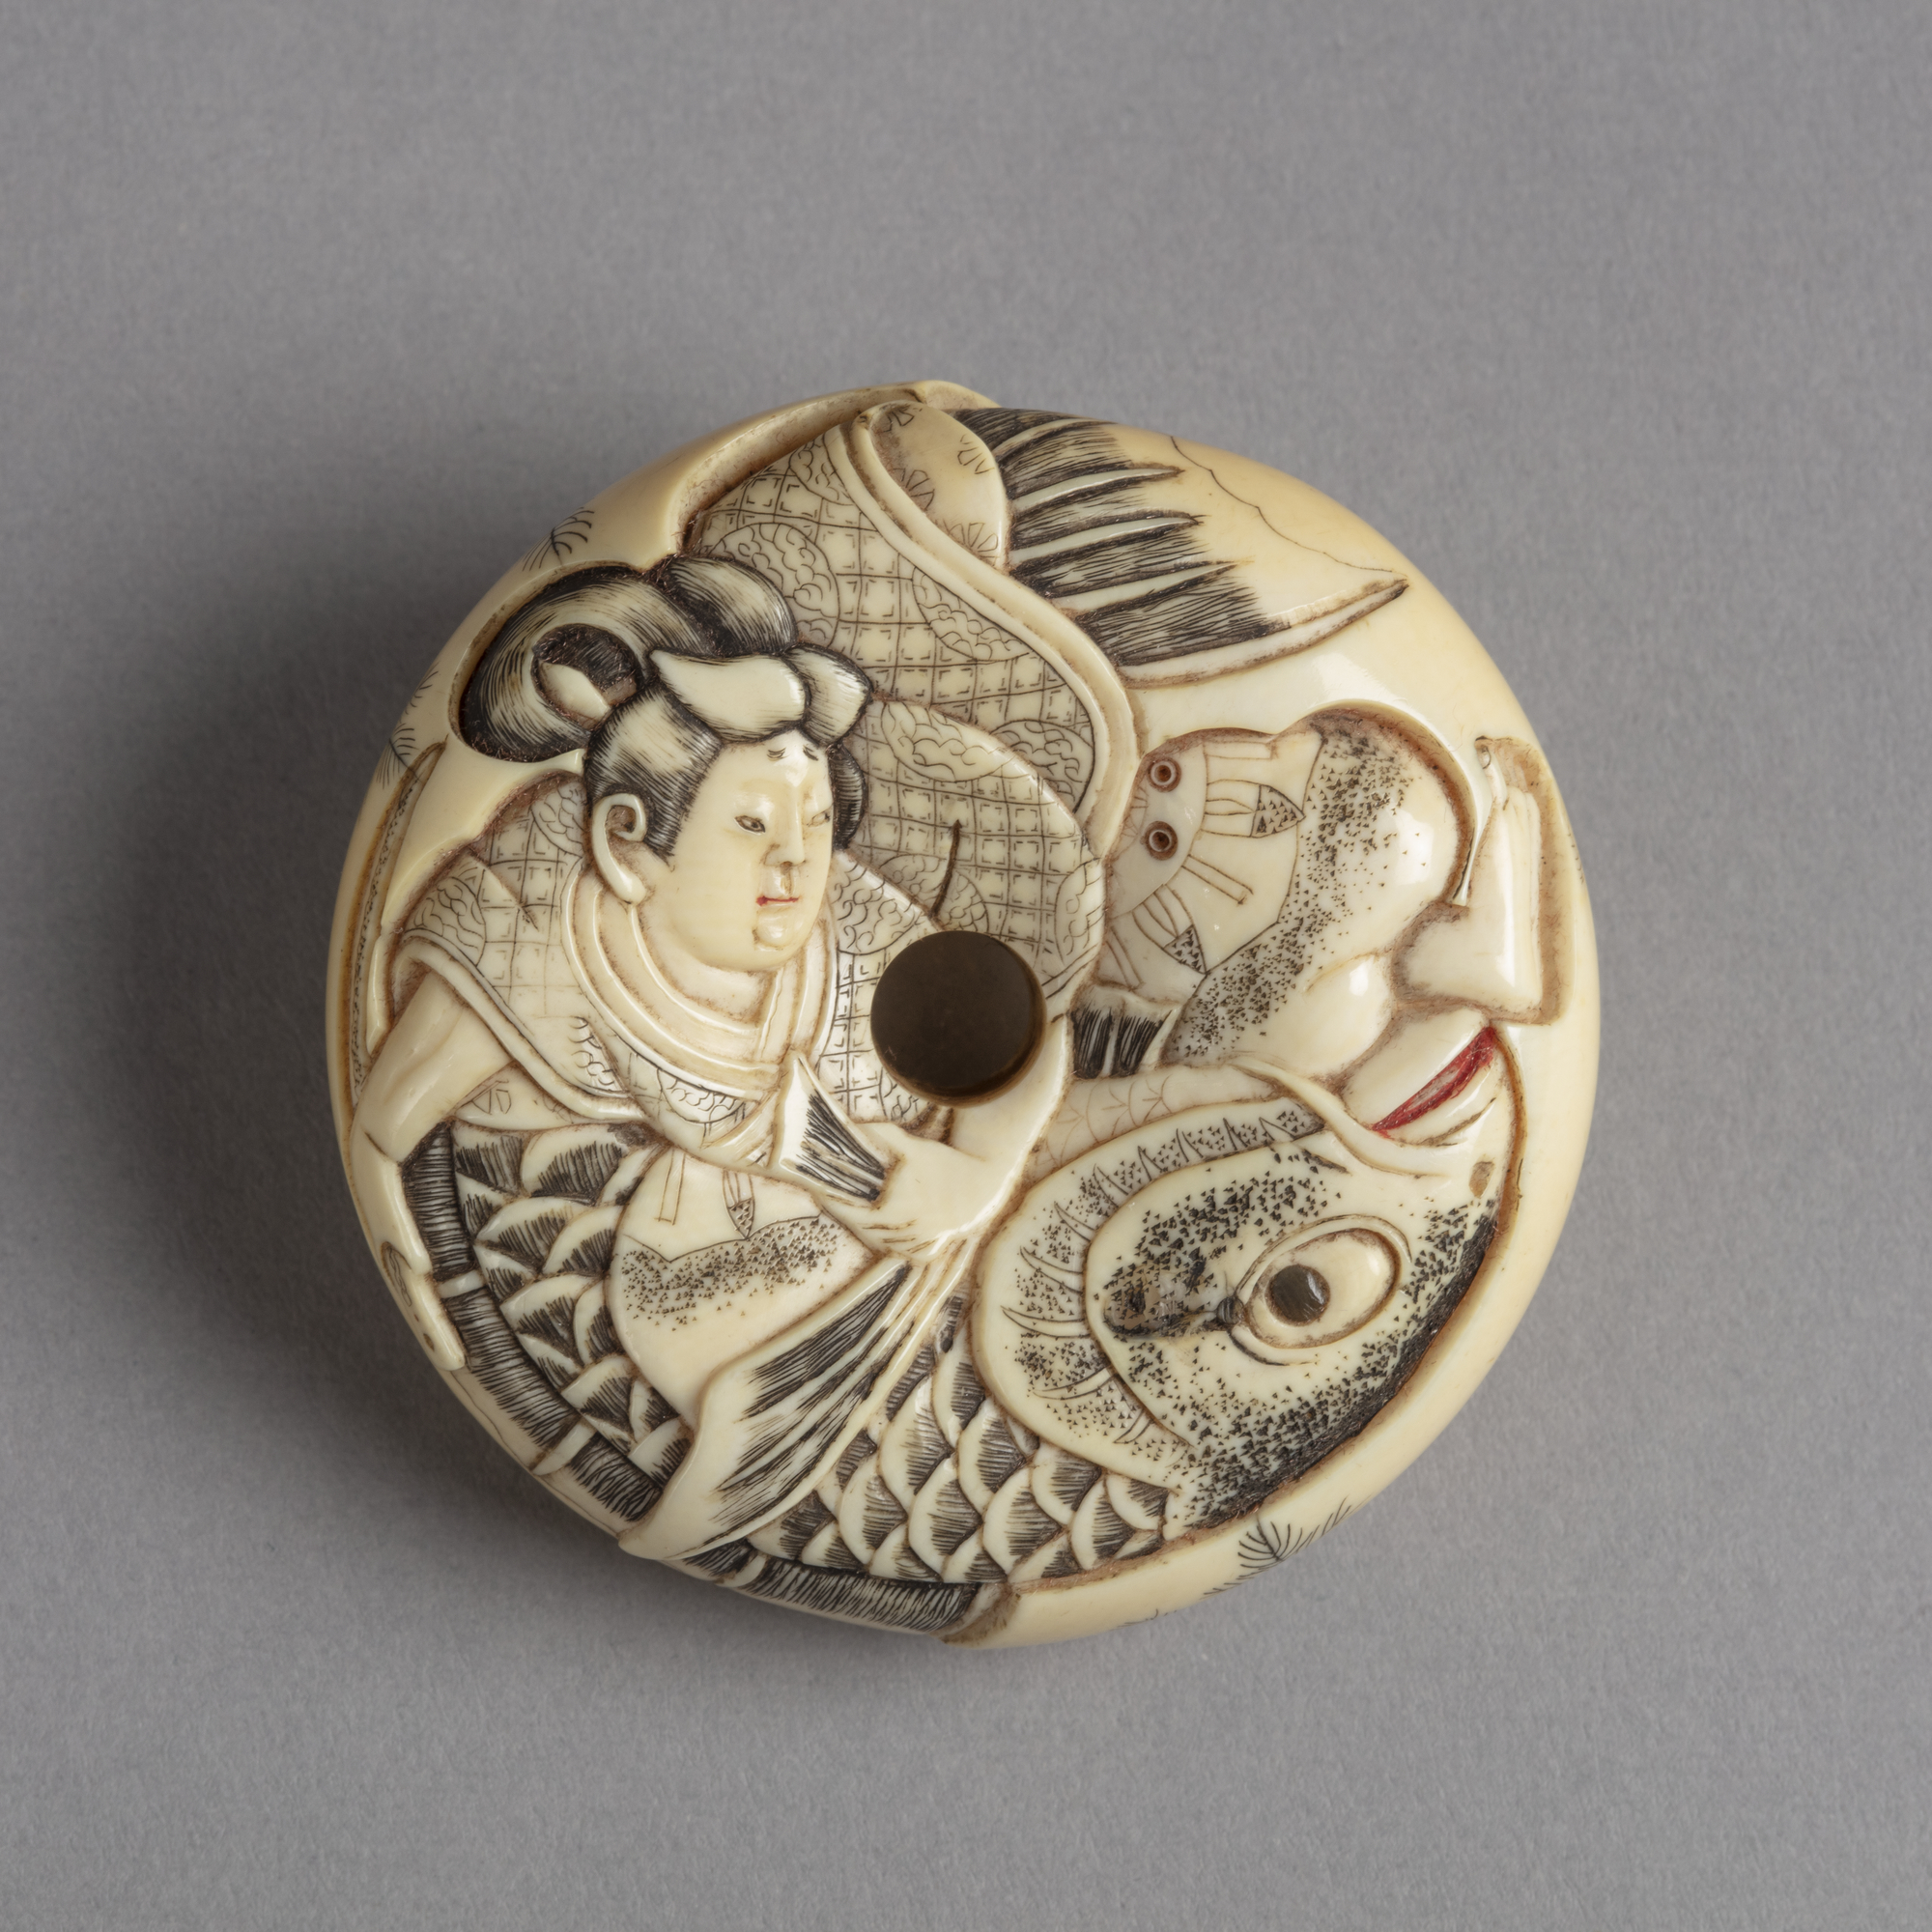 A Japanese ivory netsuke of a man fighting a very large fish carved on a doughnut-shaped disk.